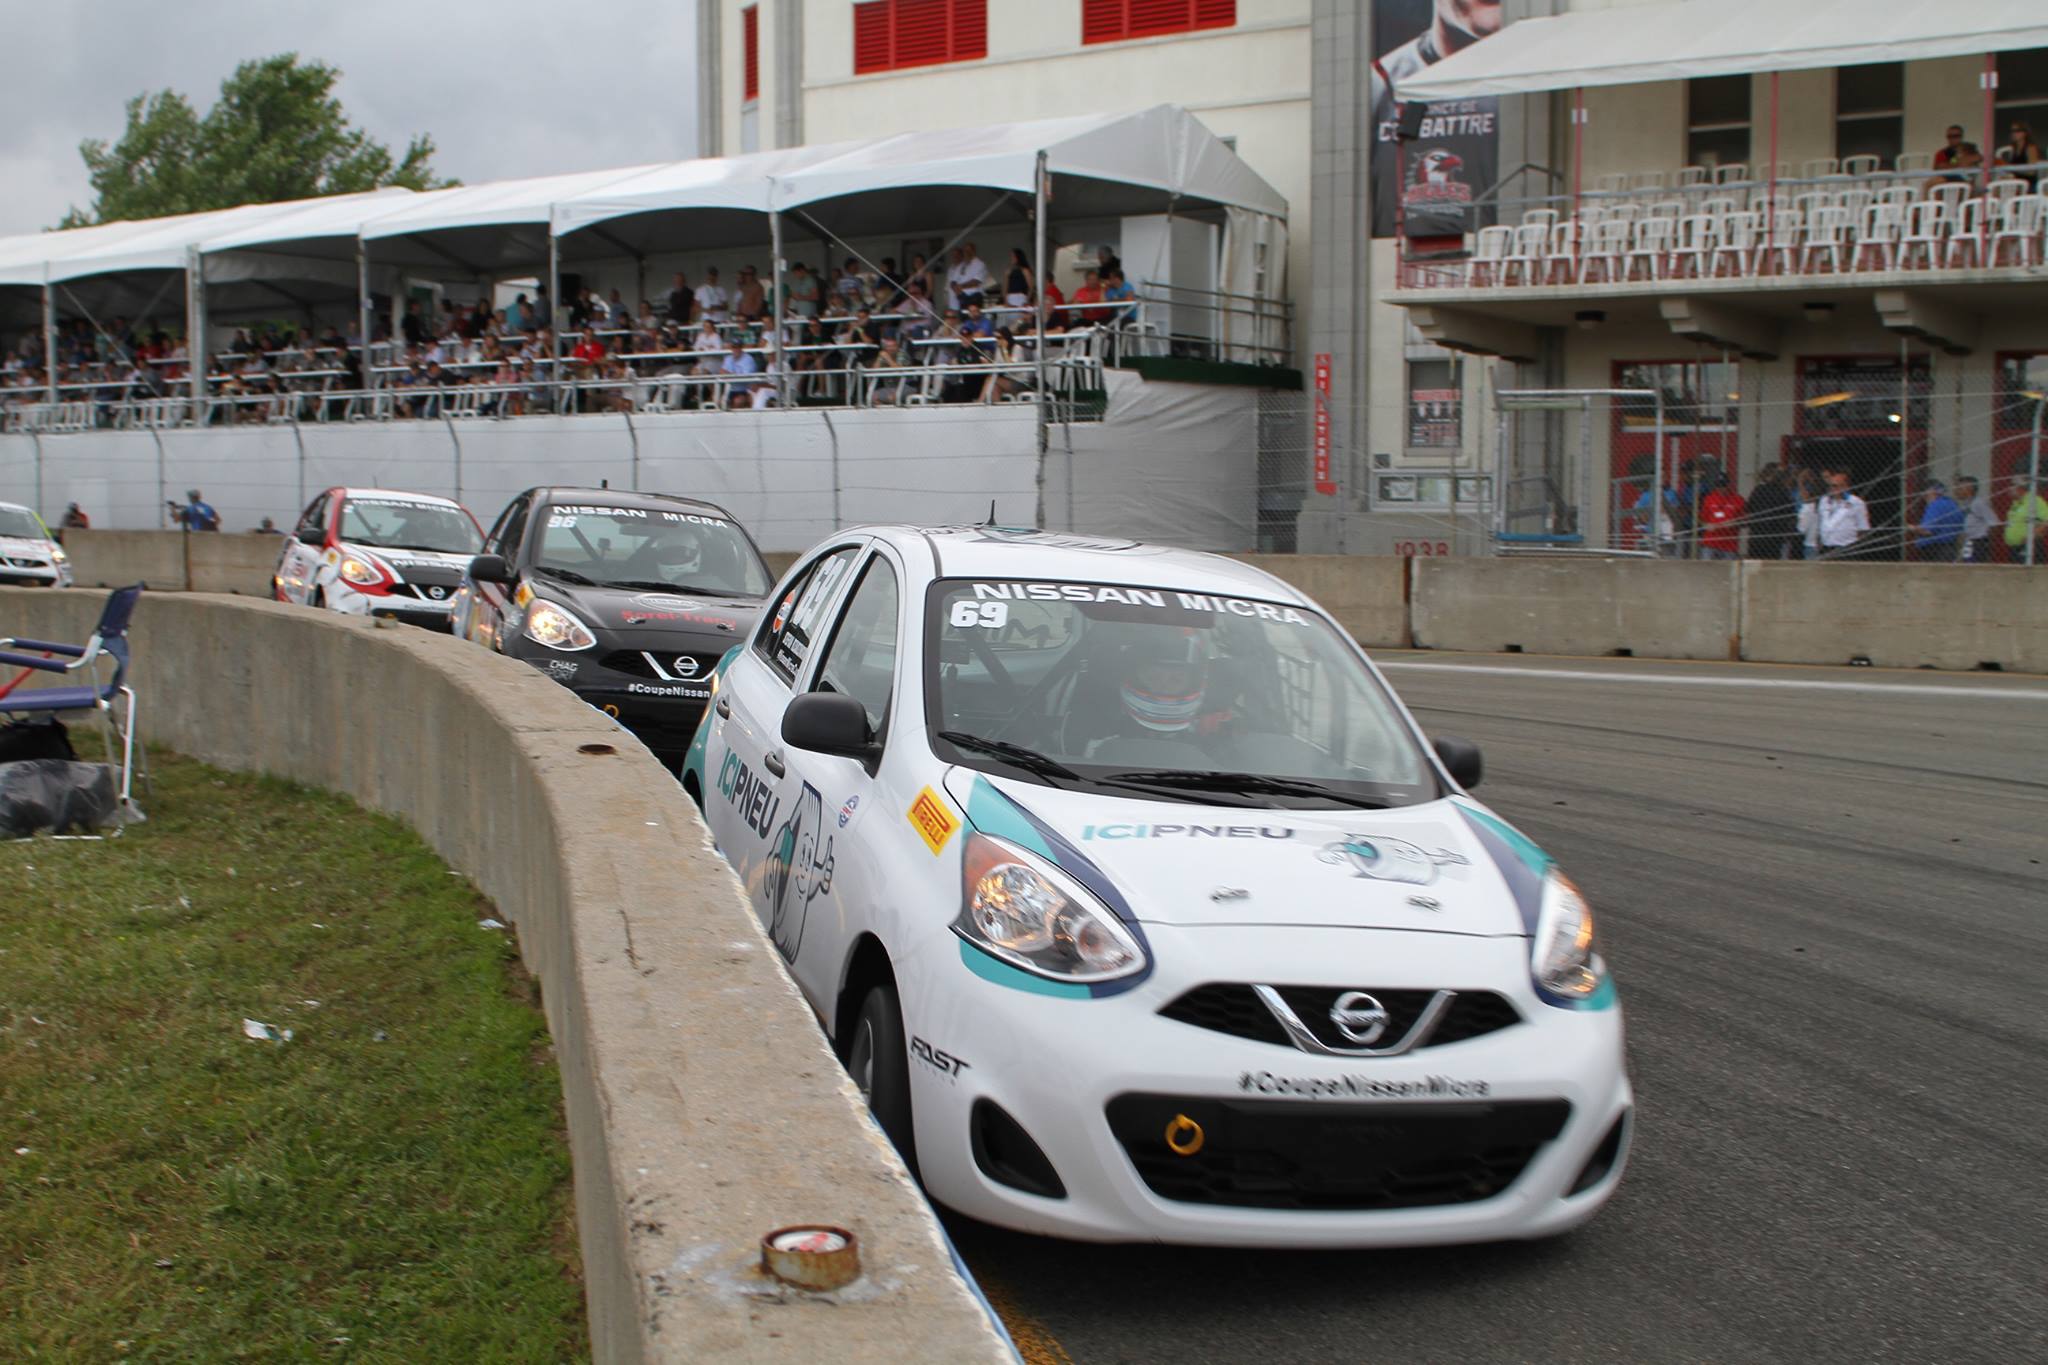 Live stream of the 2 nd Micra Cup race